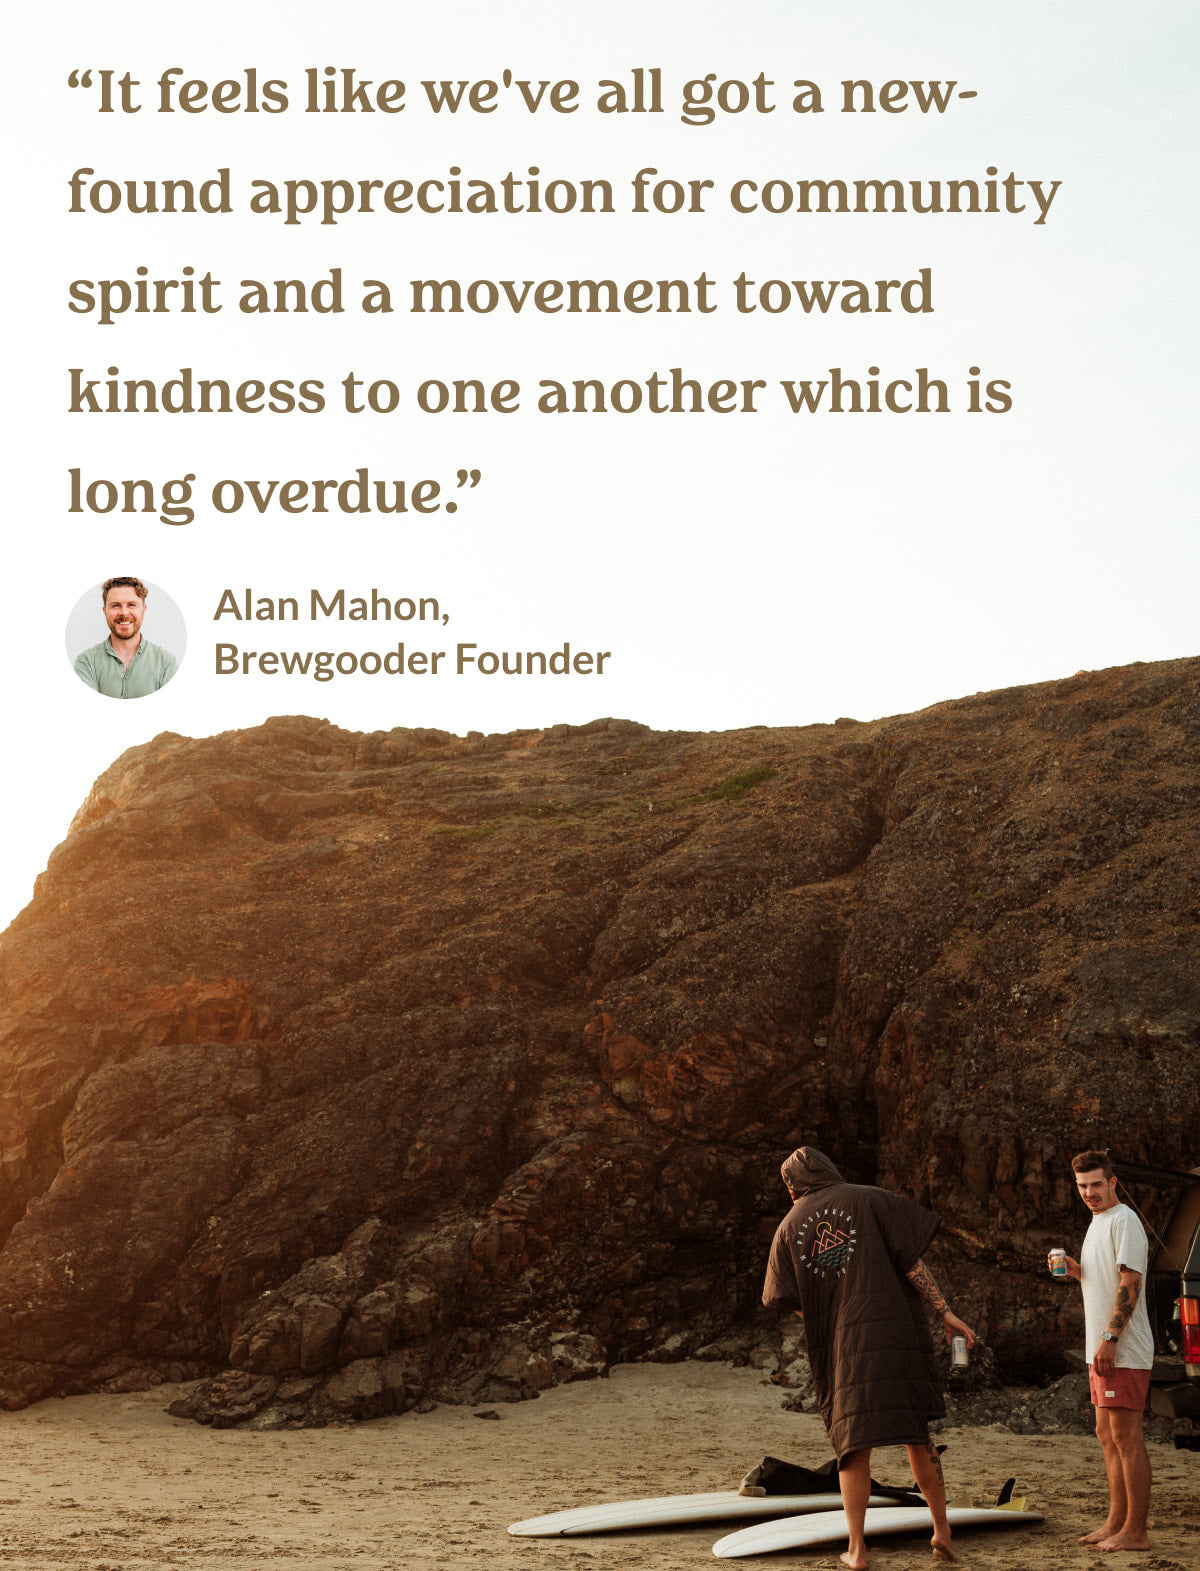 quote from Alan Mahon: It feels like we've all got a new-found appreciation for community spirit and a movement toward kindness to one another which is long overdue.